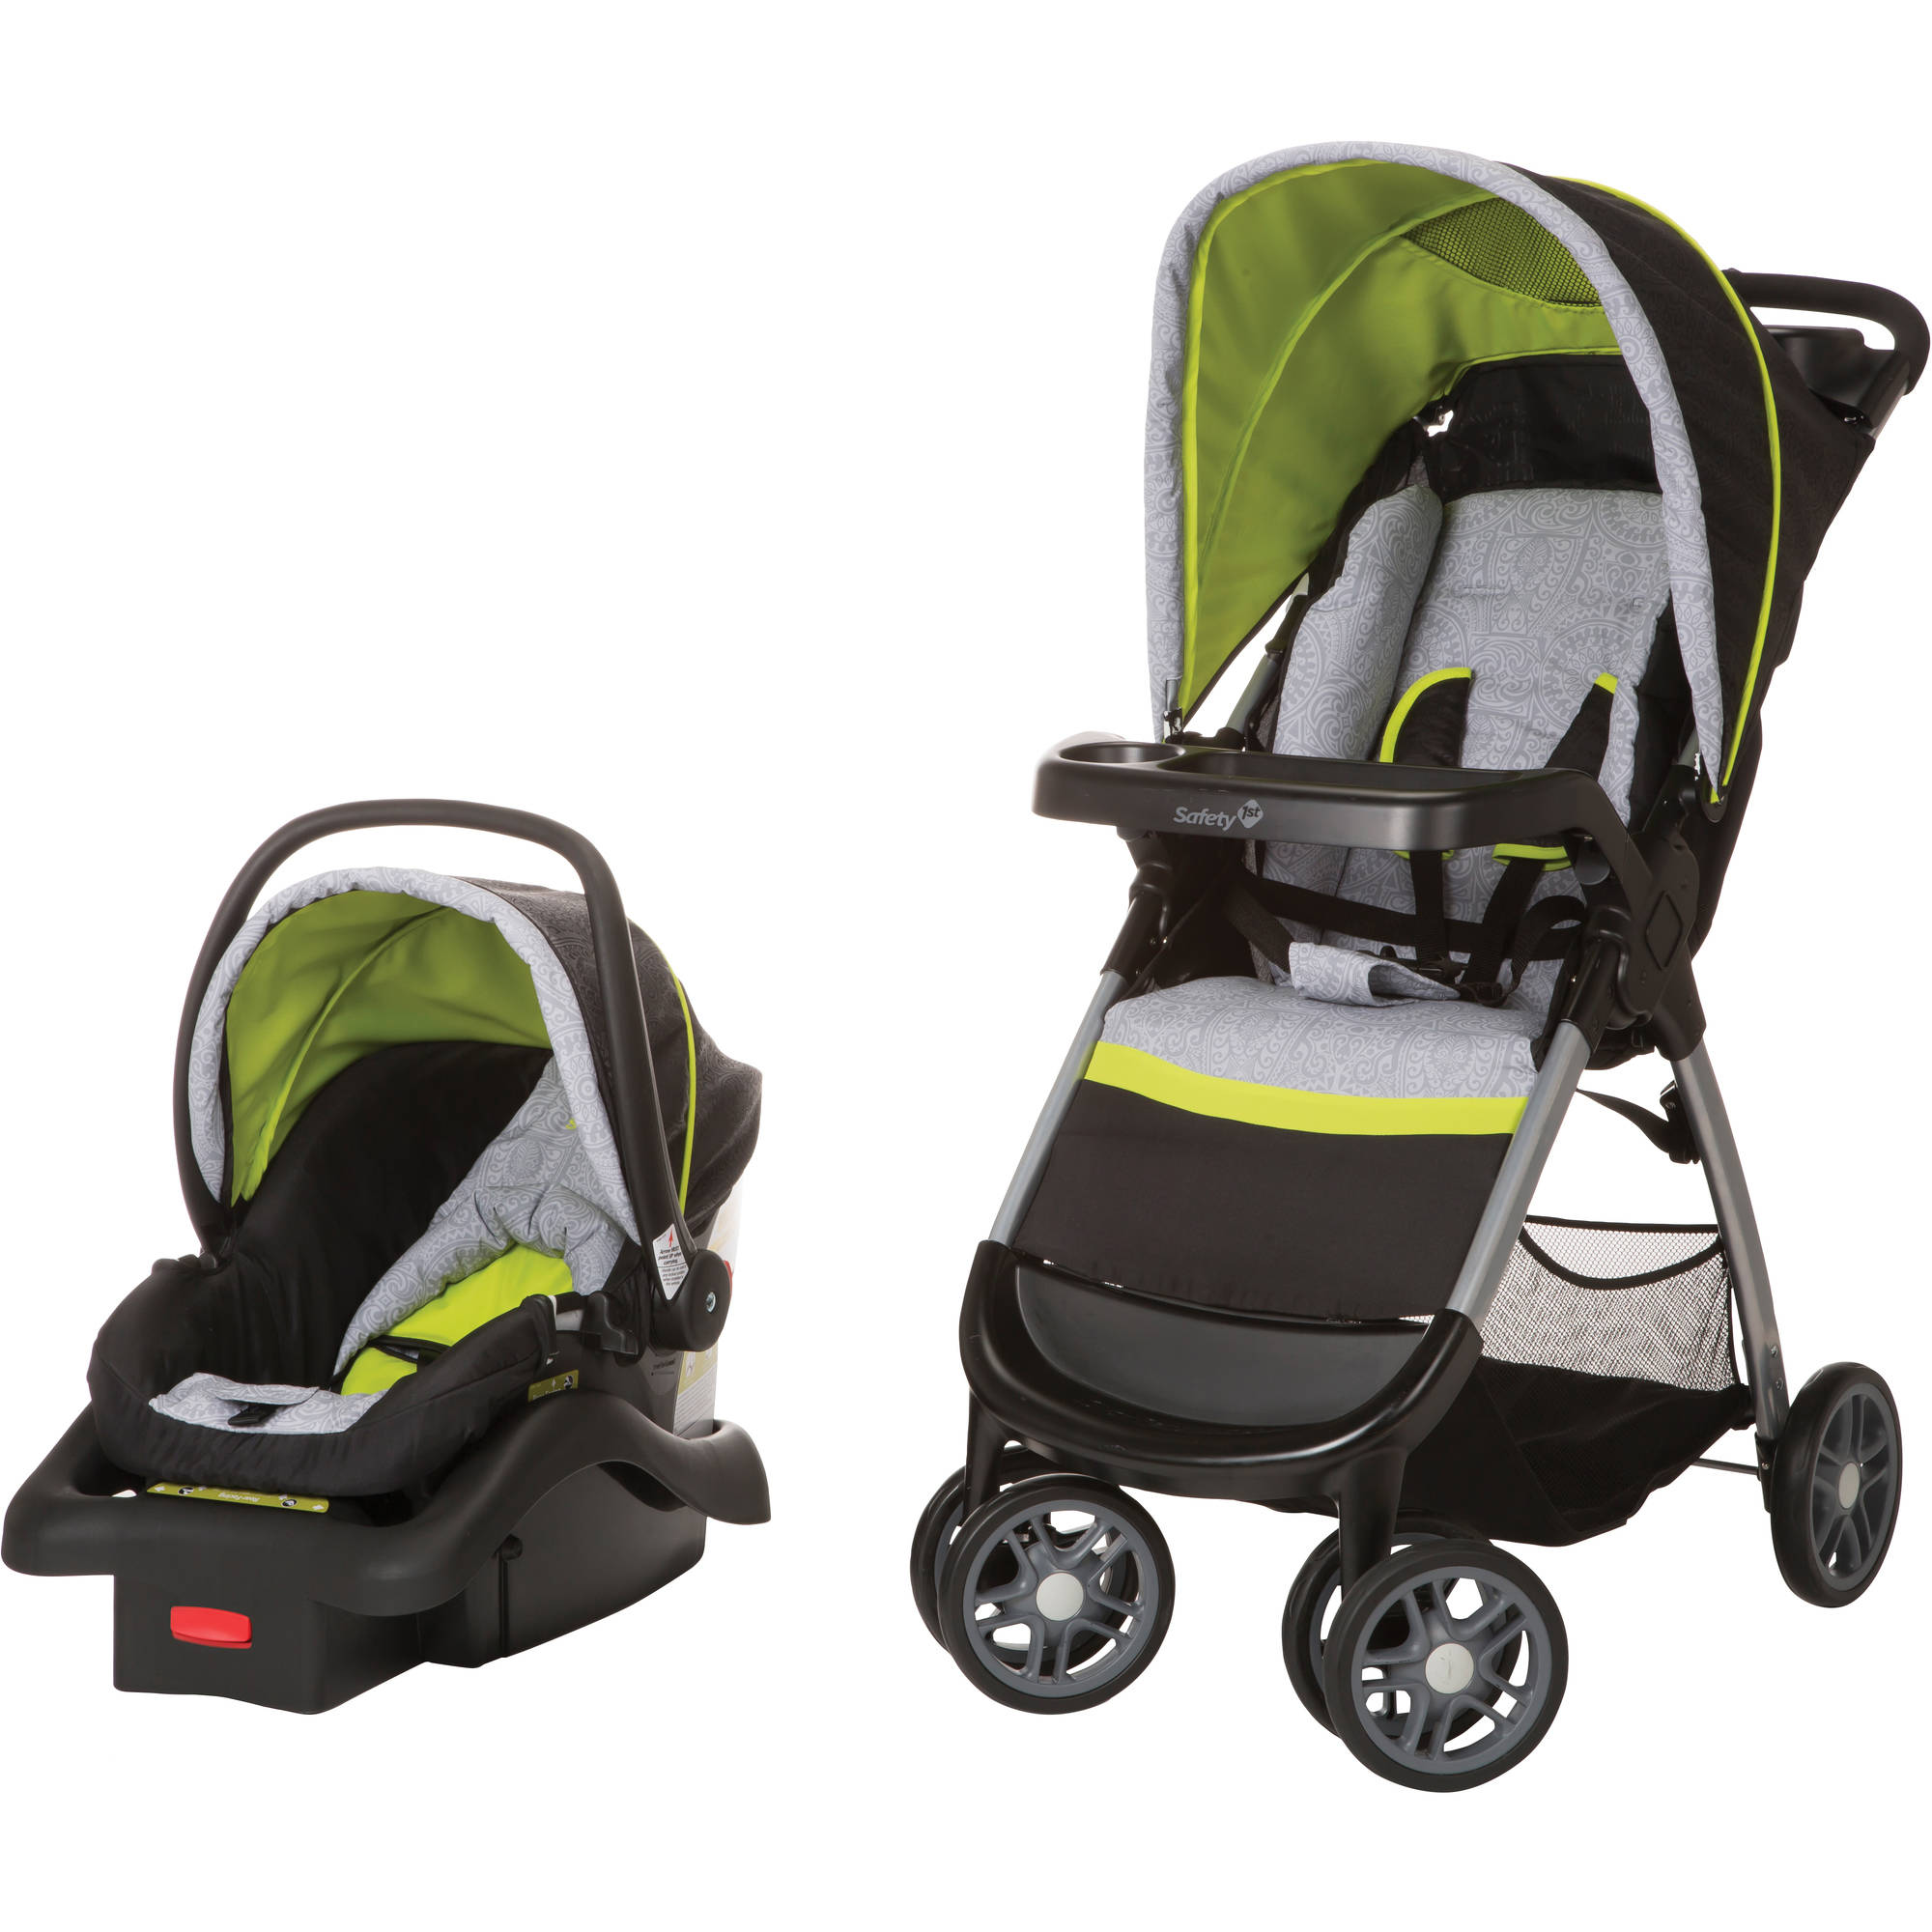 Safety 1st Car Seat Stroller Combo - Seat